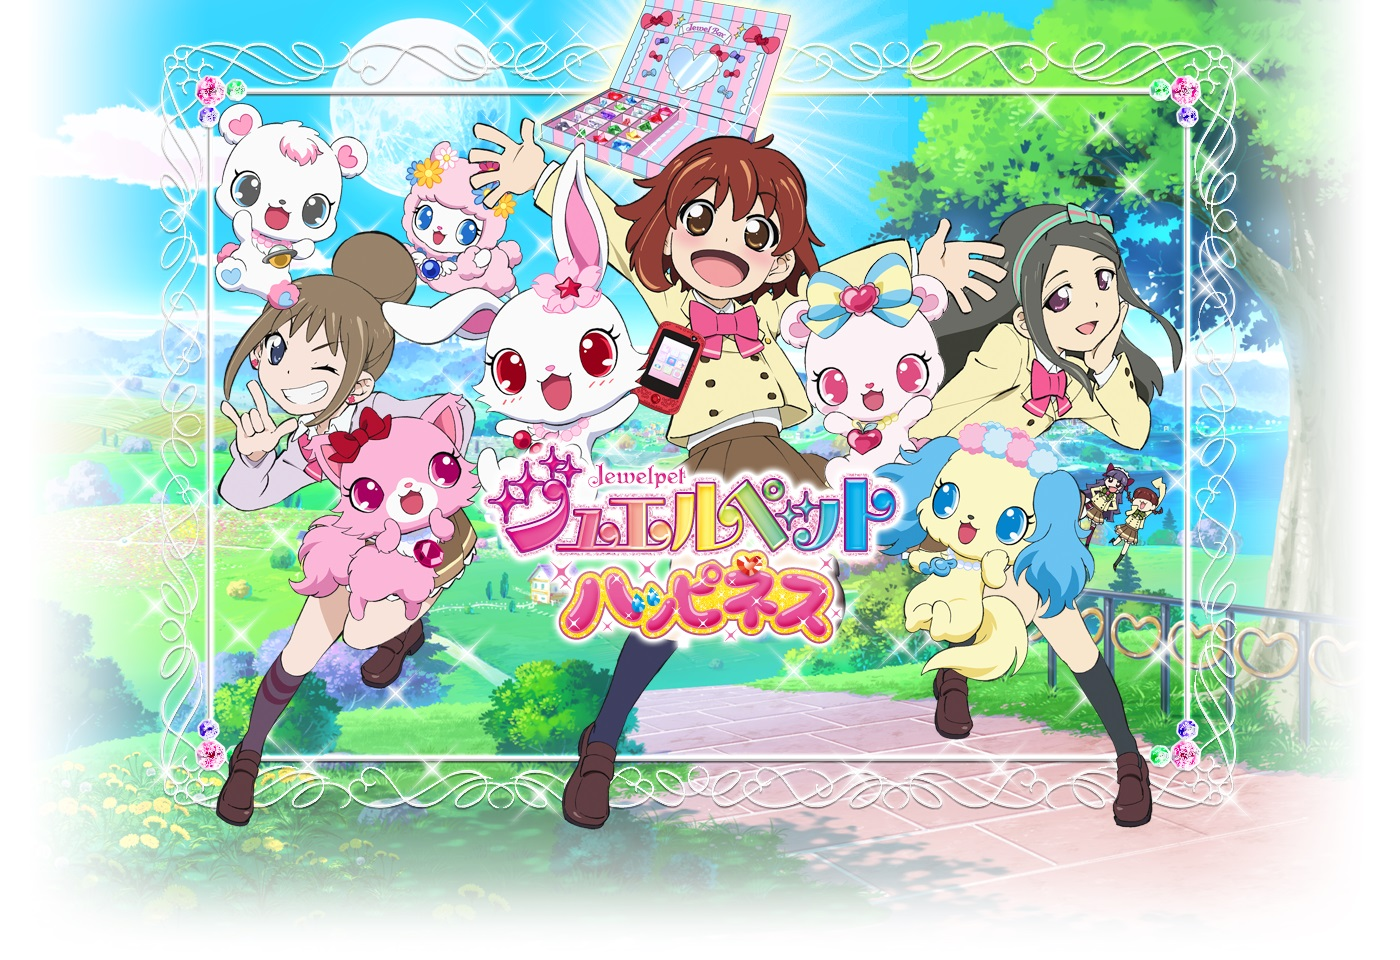 Jewelpet saison 5